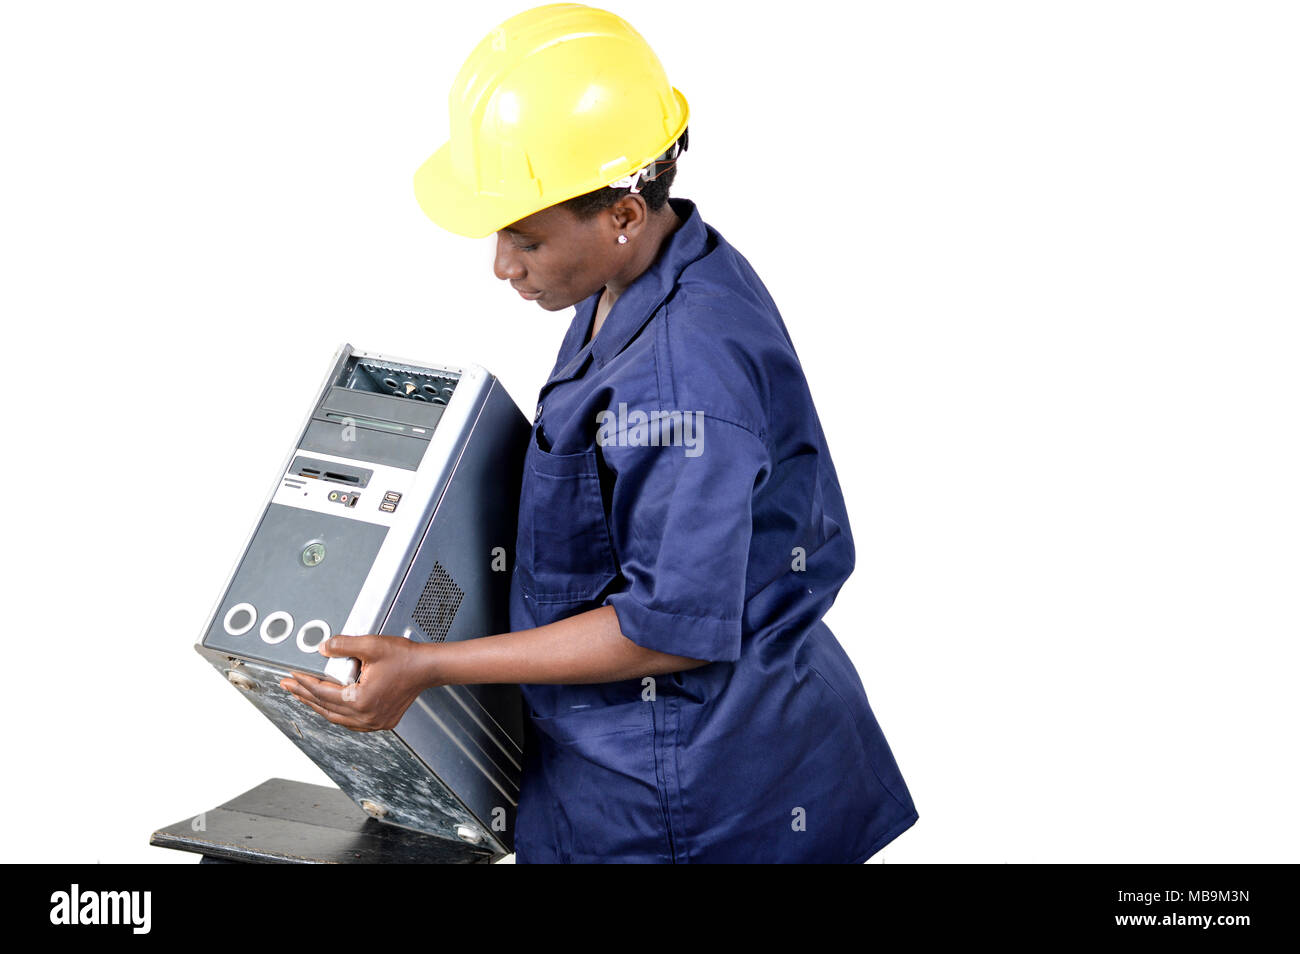 Young female computer repairer checks a central unit by lifting it. - Stock Image